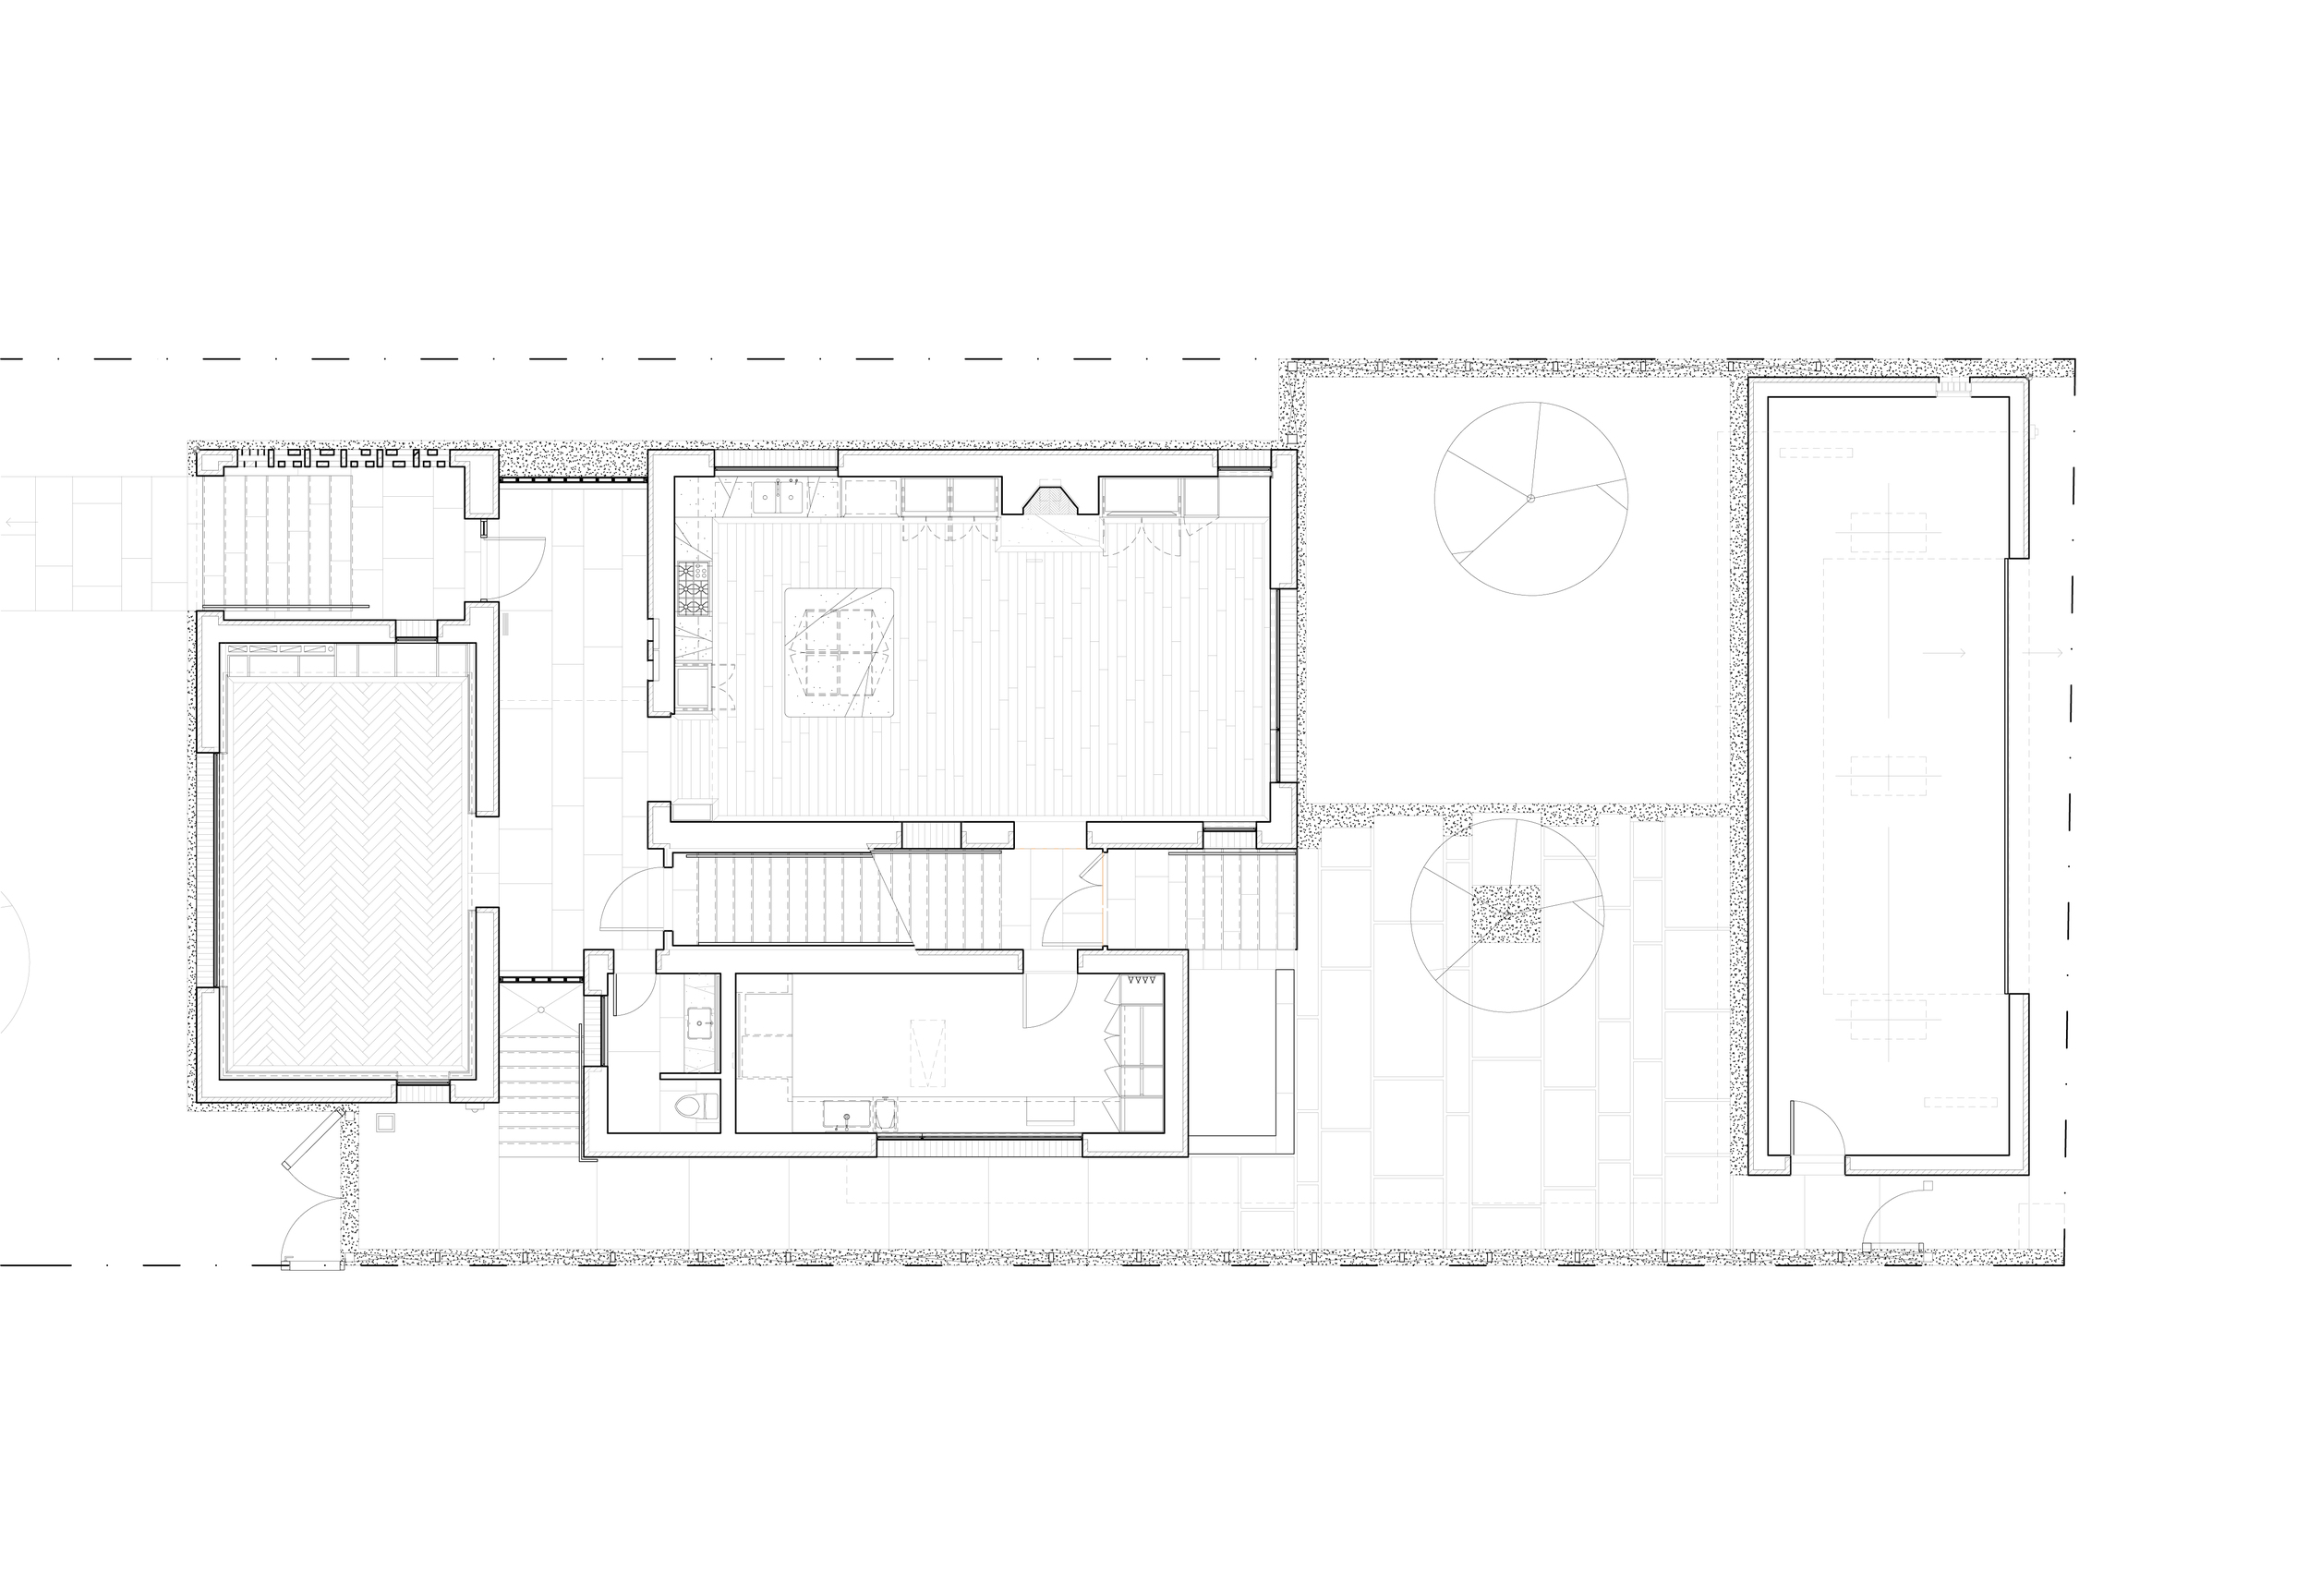 06 plan-ground floor.jpg